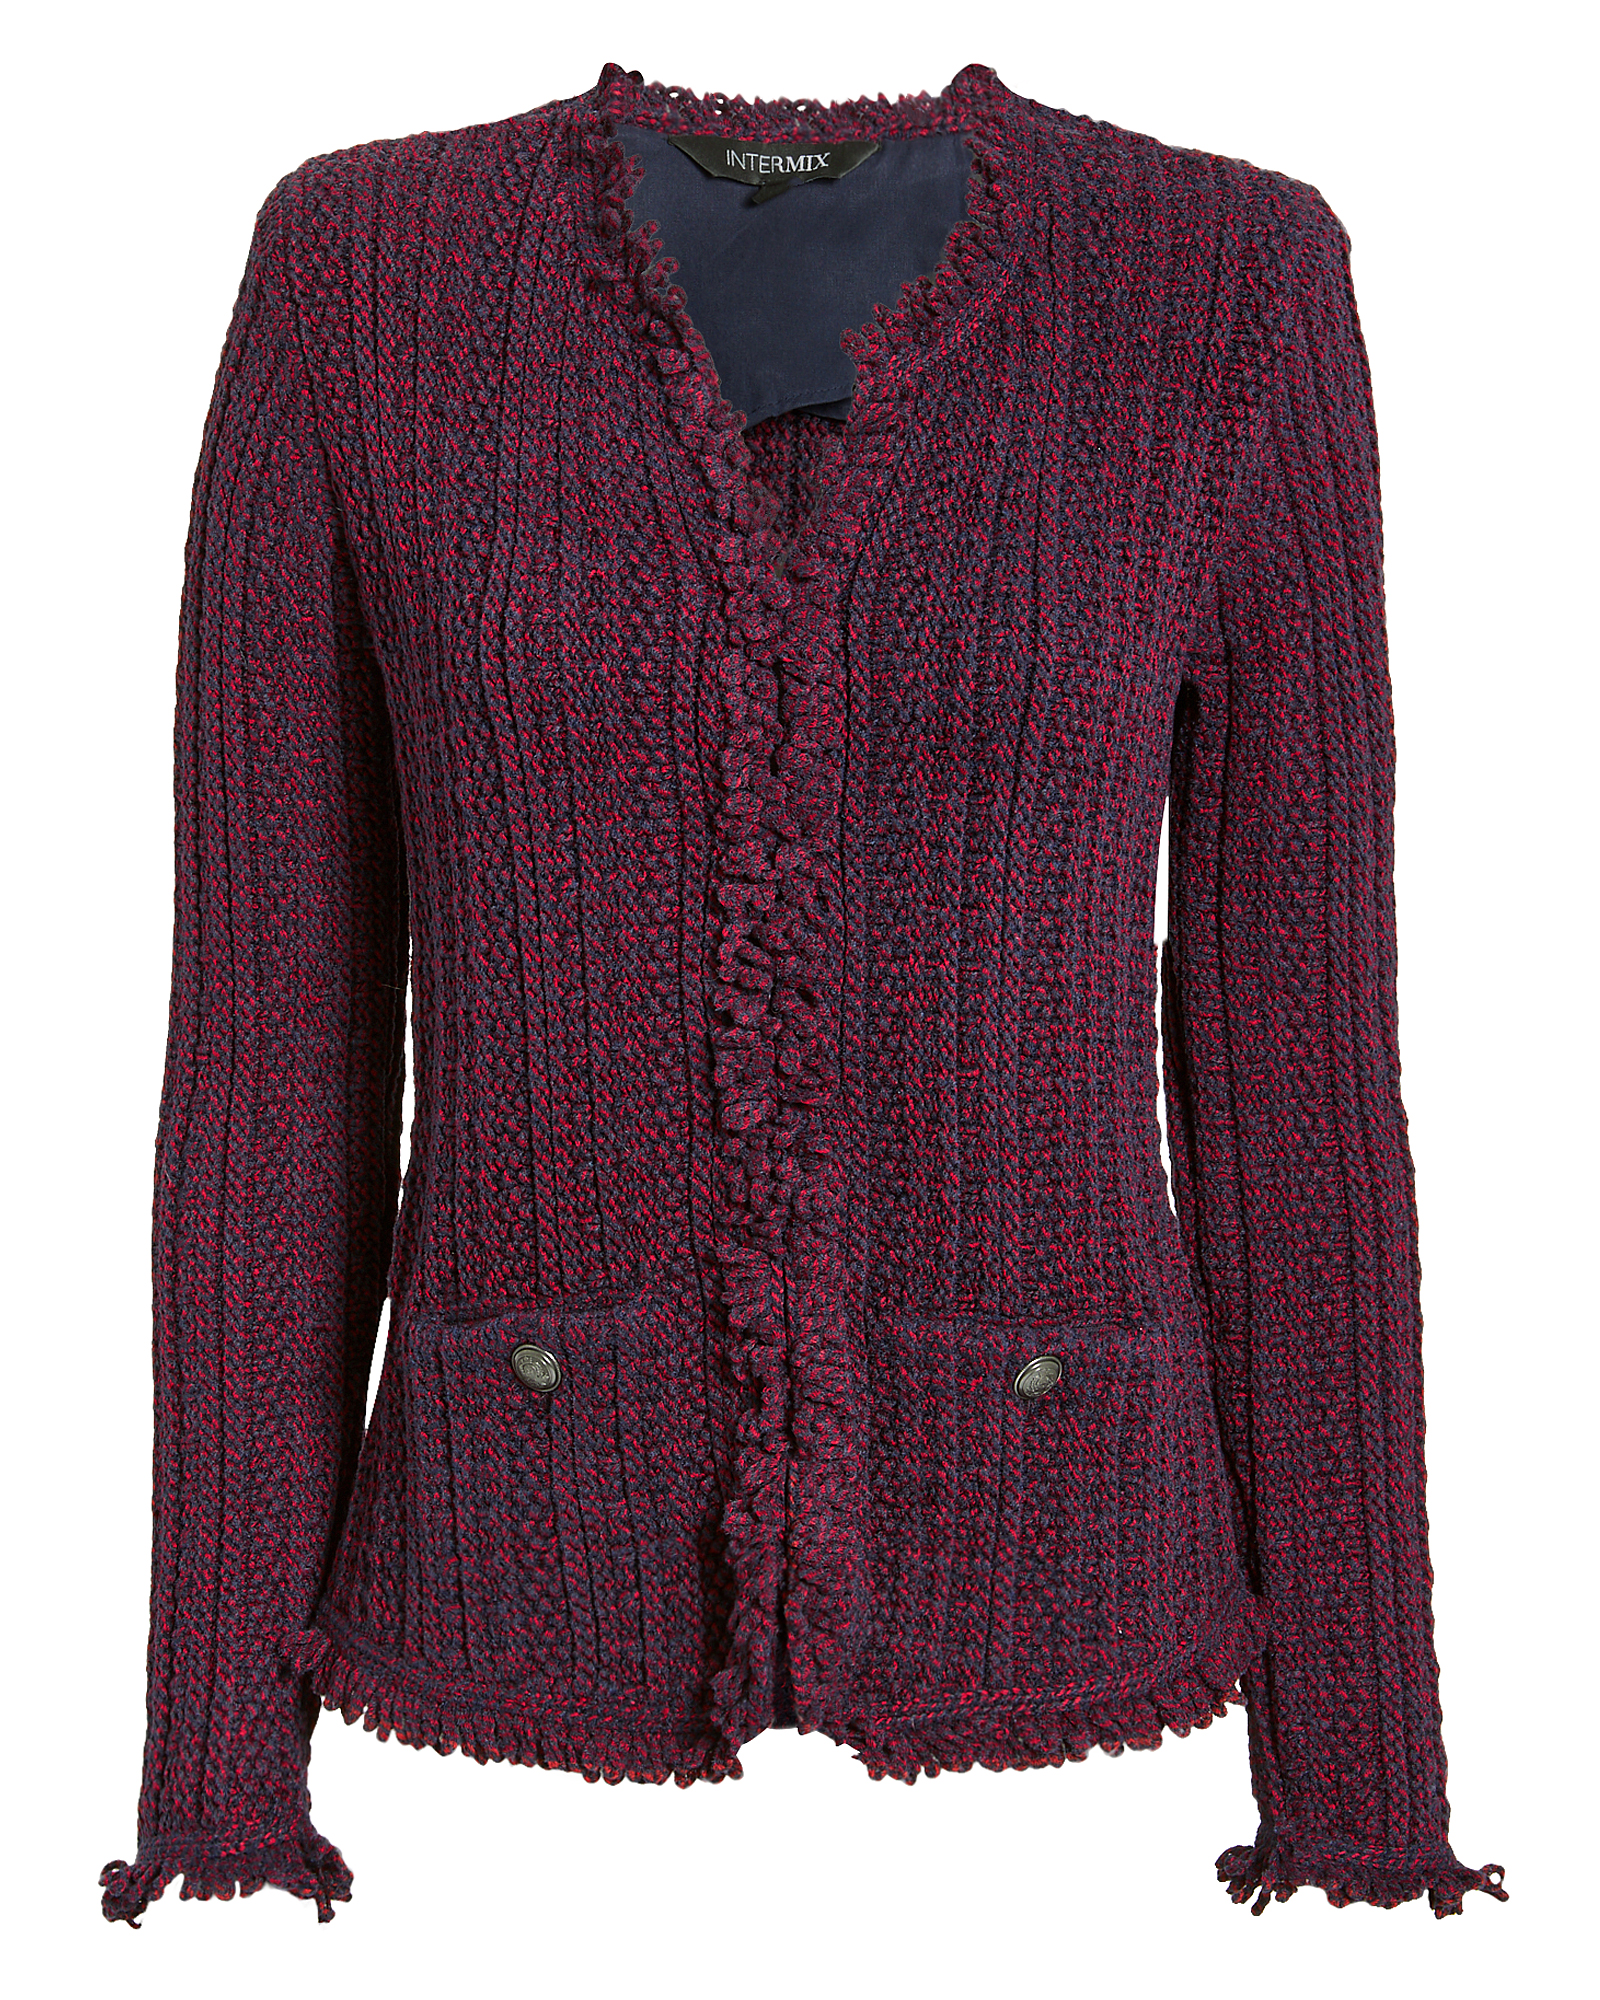 EXCLUSIVE FOR INTERMIX Intermix Ikaterina Two-Tone Knit Jacket Red/Blue